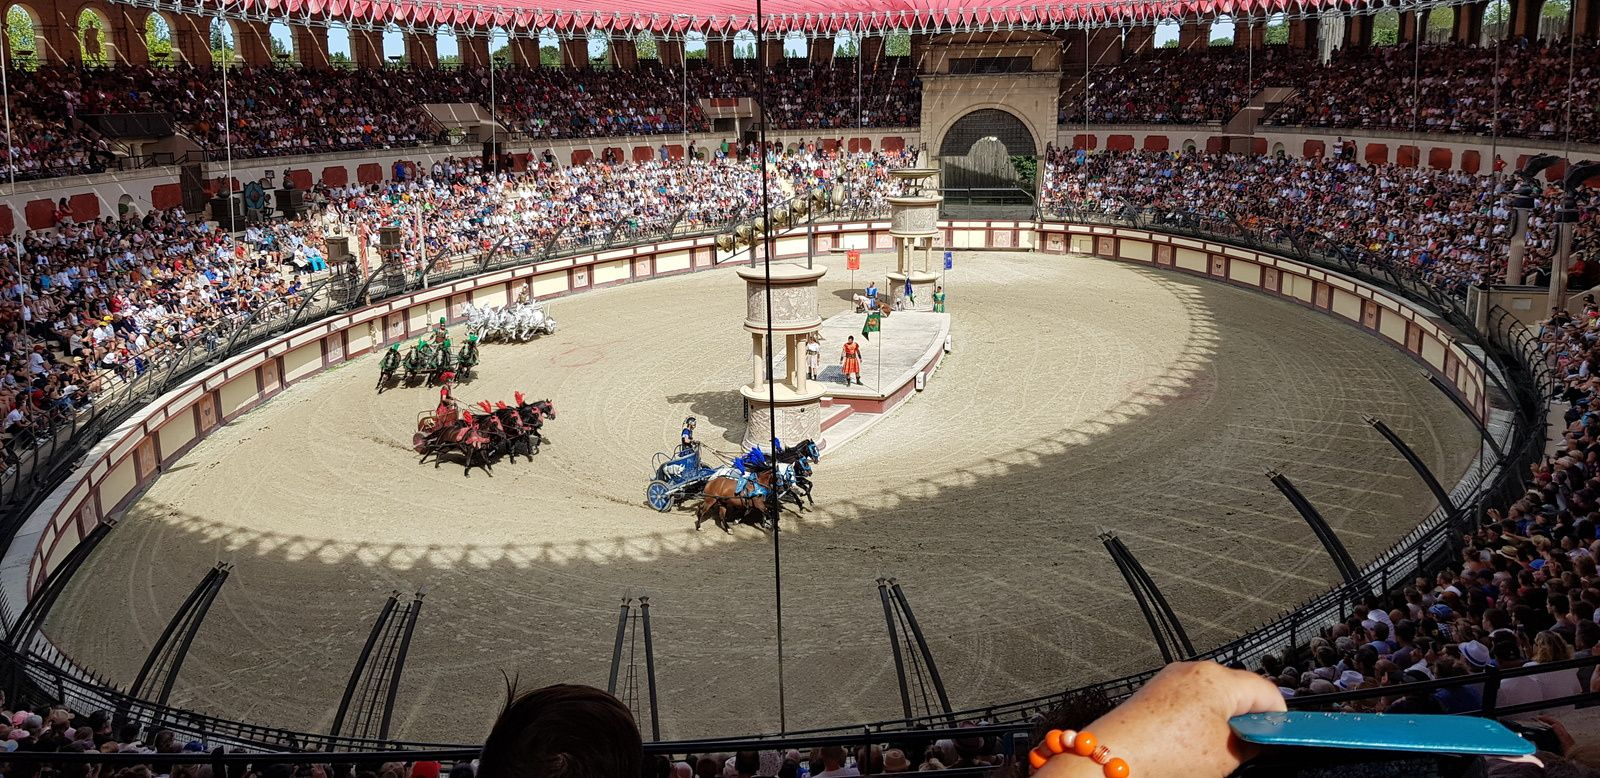 13 , 14 et 15 septembre 2019 : Sortie Nationale du SM Club de France au Puy du Fou